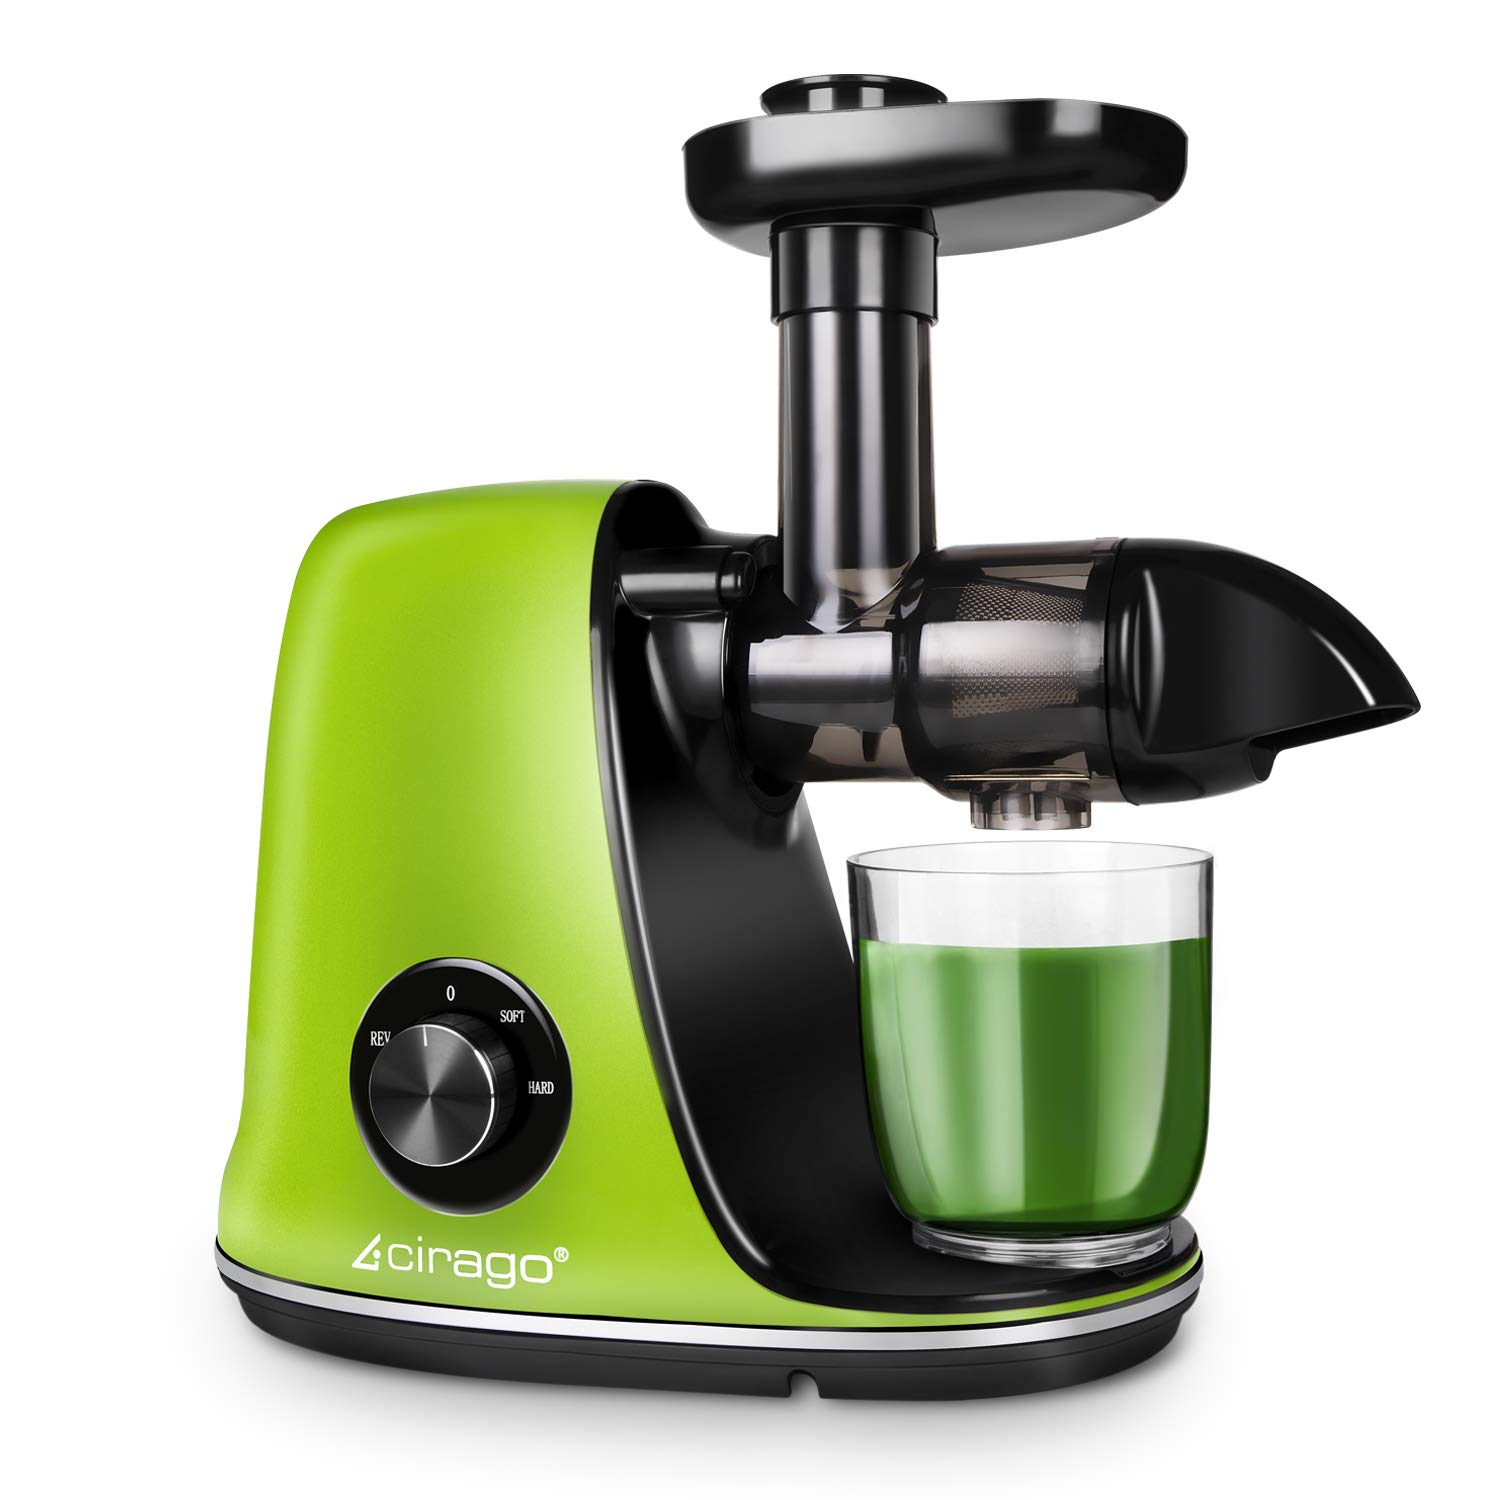 CIRAGO Juicer Machines, Slow Masticating Juicer Extractor Two Speed Adjustment, Easy to Clean, Quiet Motor, Cold Press Juicer for Vegetables and Fruits, BPA-Free by CIRAGO